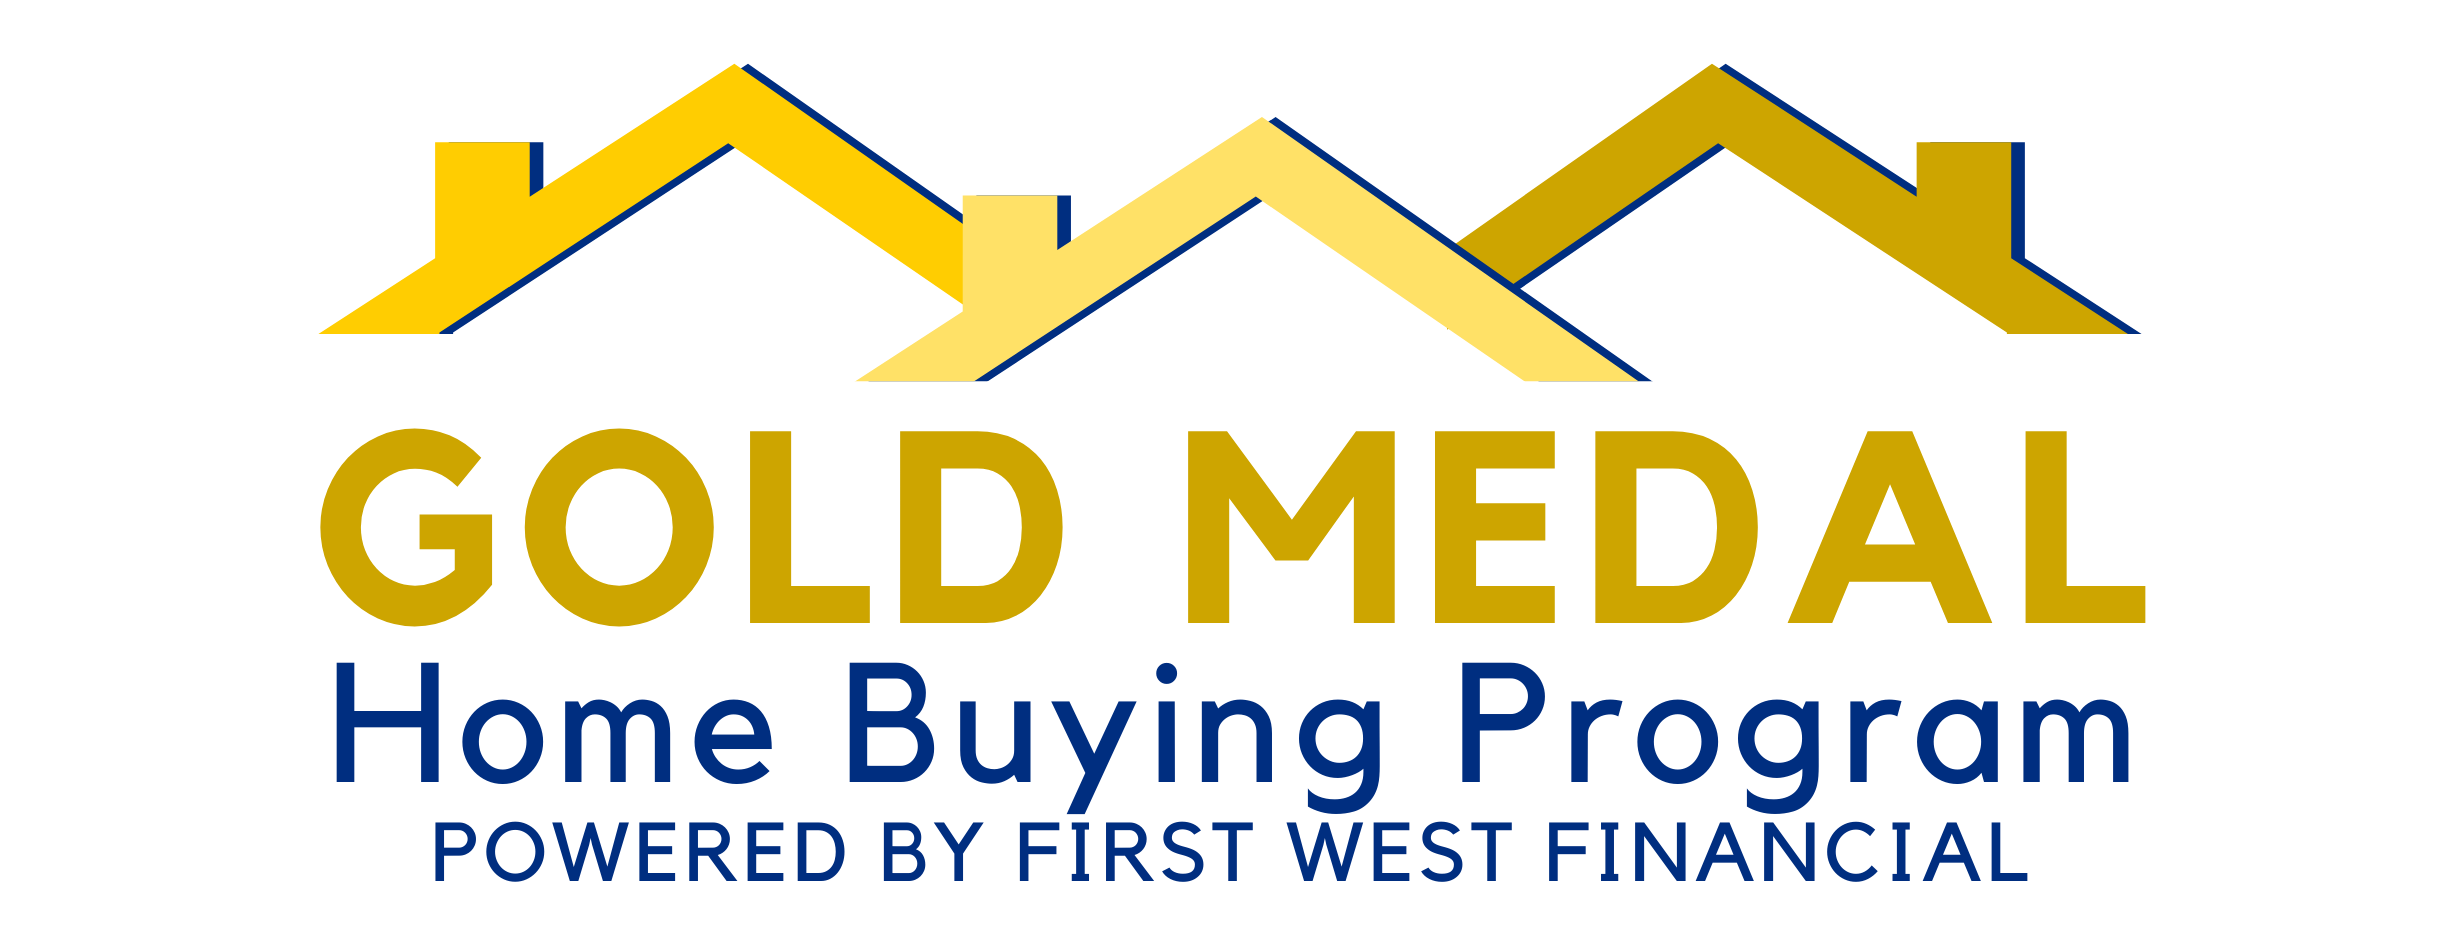 Gold Medal Home Buying Program